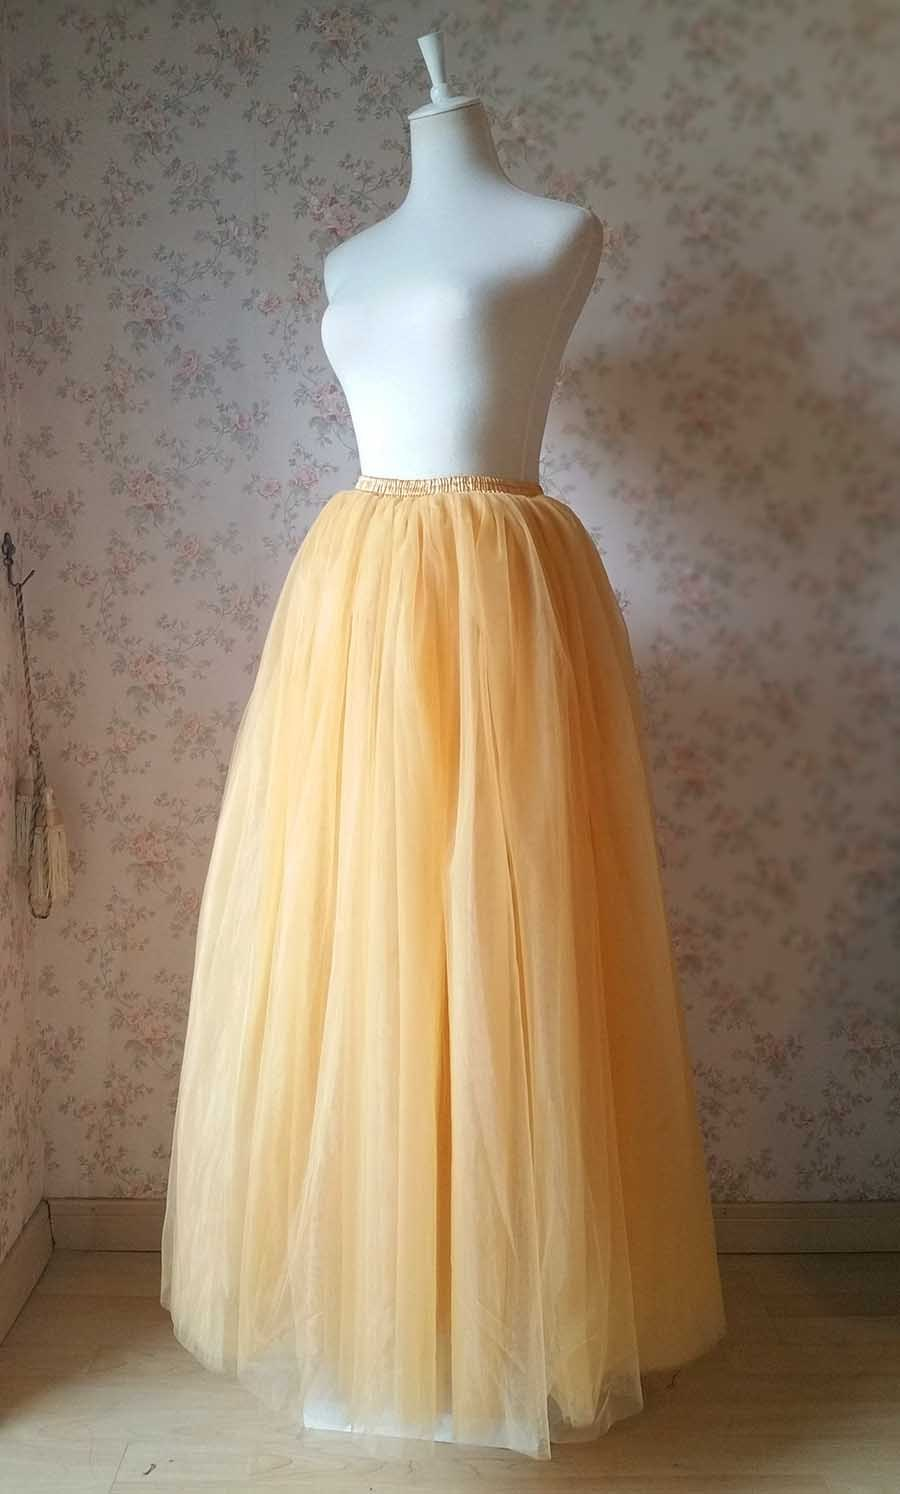 GOLDEN Elastic High Waist Floor Length Full Tulle Skirt Plus Size Wedding Skirts